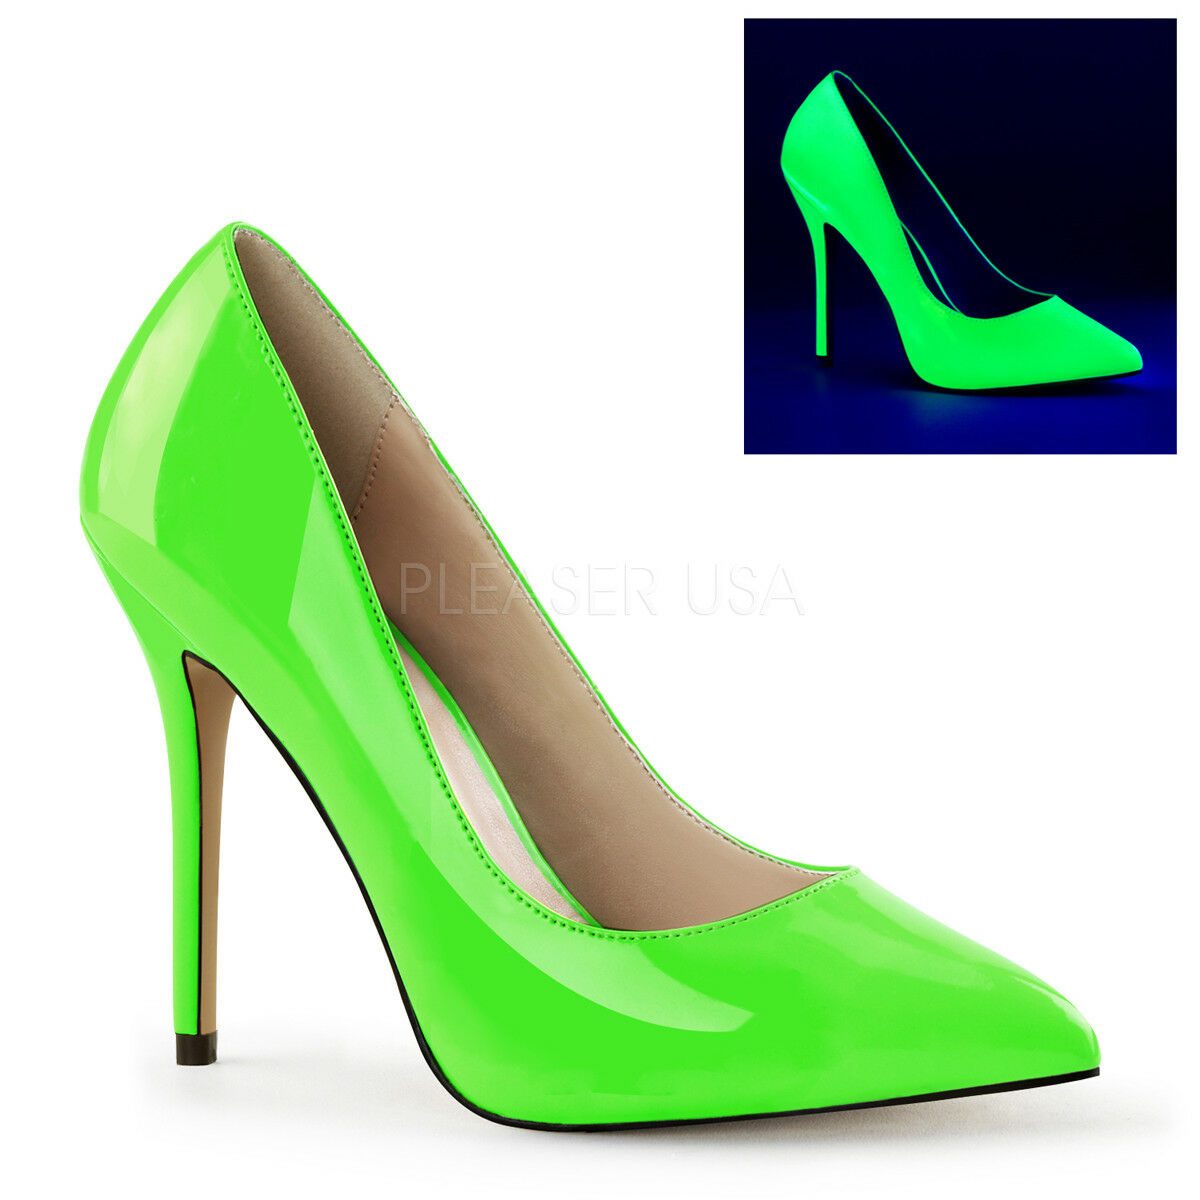 Pleaser shoes Amuse-20 Party Evening Green Neon Sexy 5 5 5  Heels Stilettos Size 10 8bb1b4